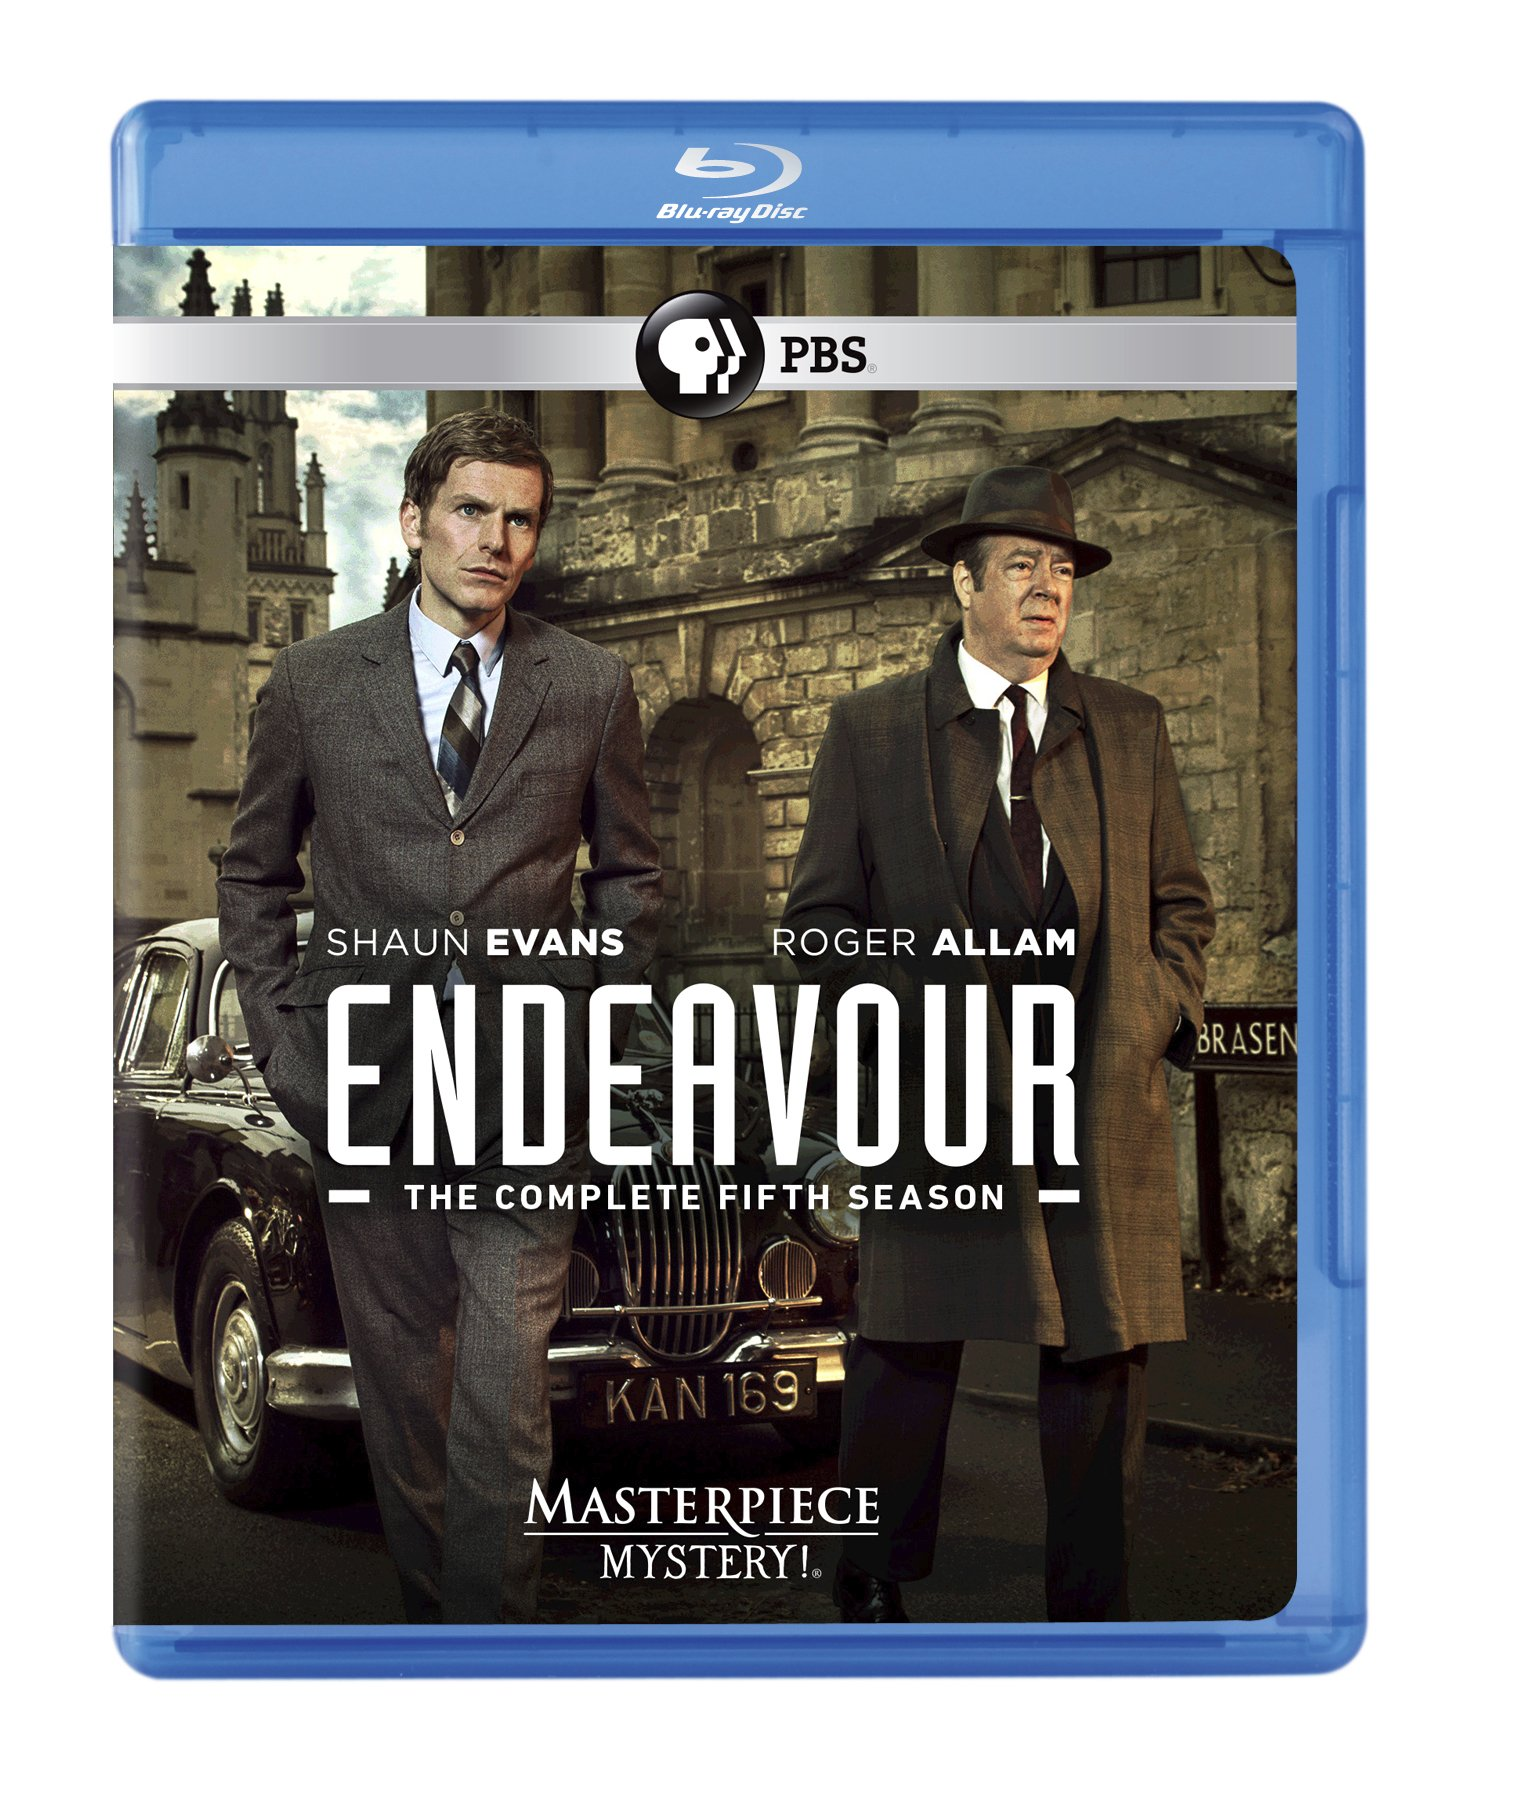 Blu-ray : Endeauvor: The Complete Fifth Season (masterpiece) (3 Pack, 3PC)